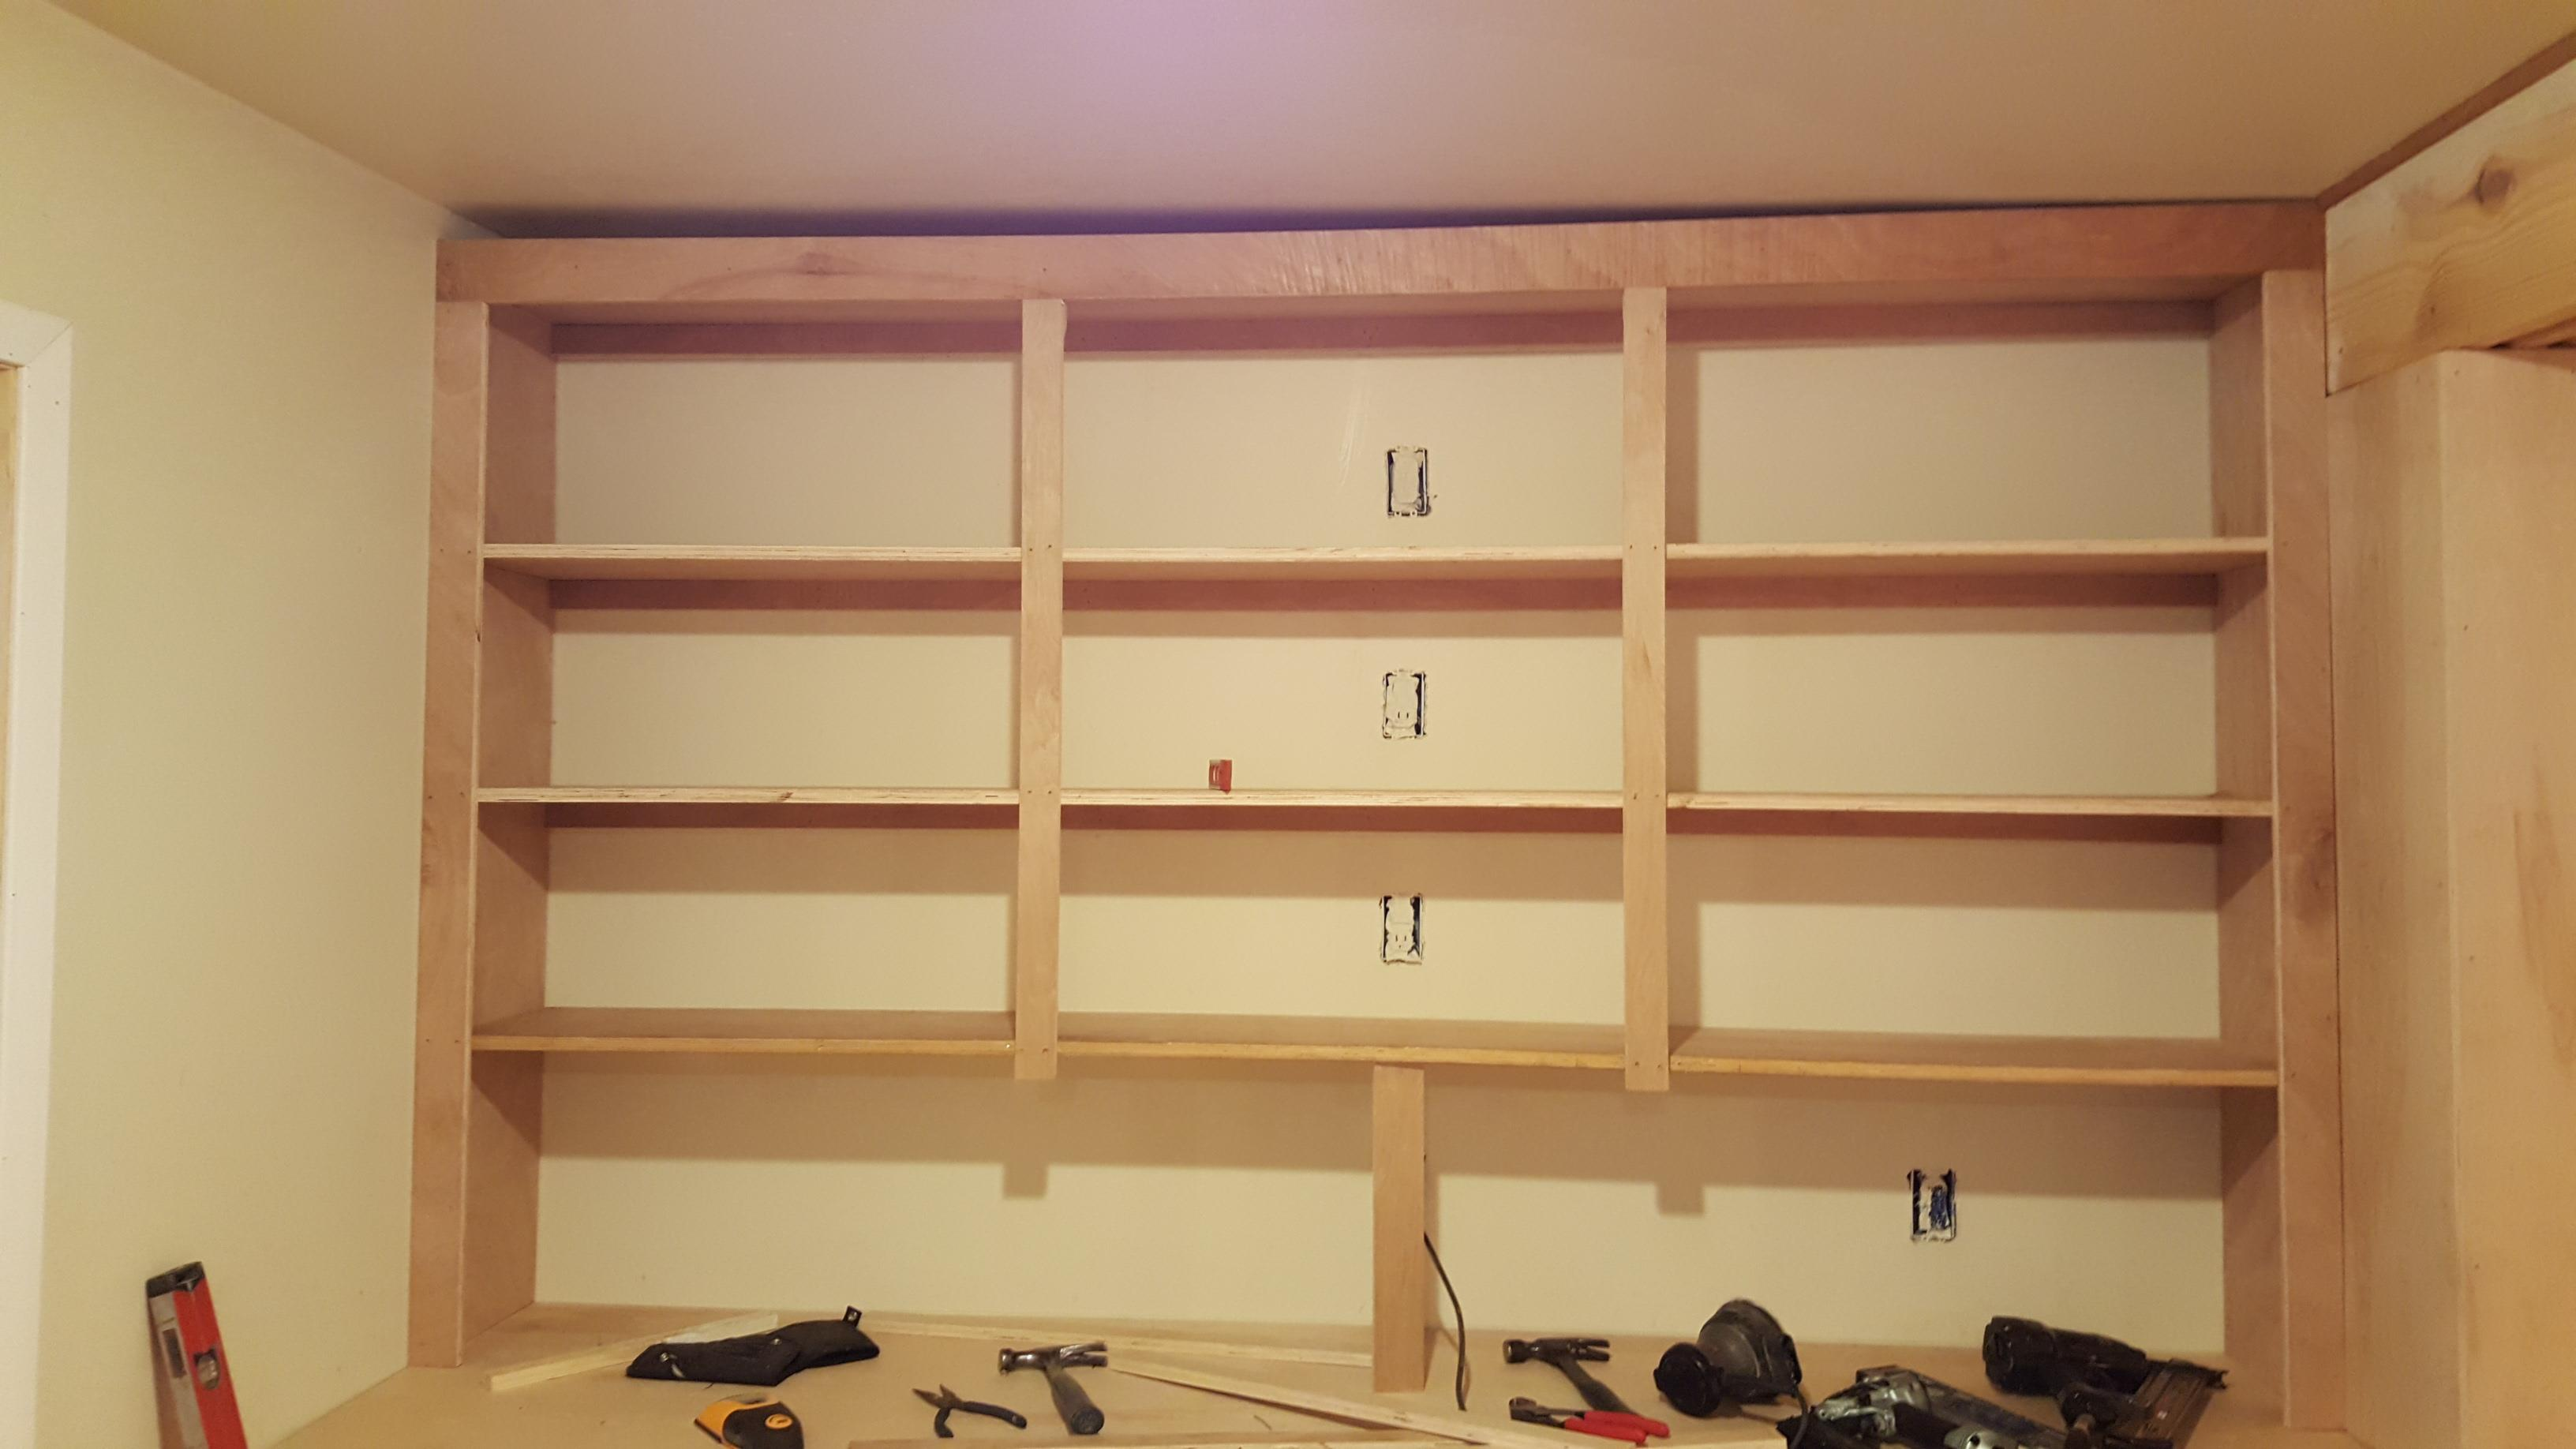 Any Ideas On How To Hide That Top? The Shelves Are Level